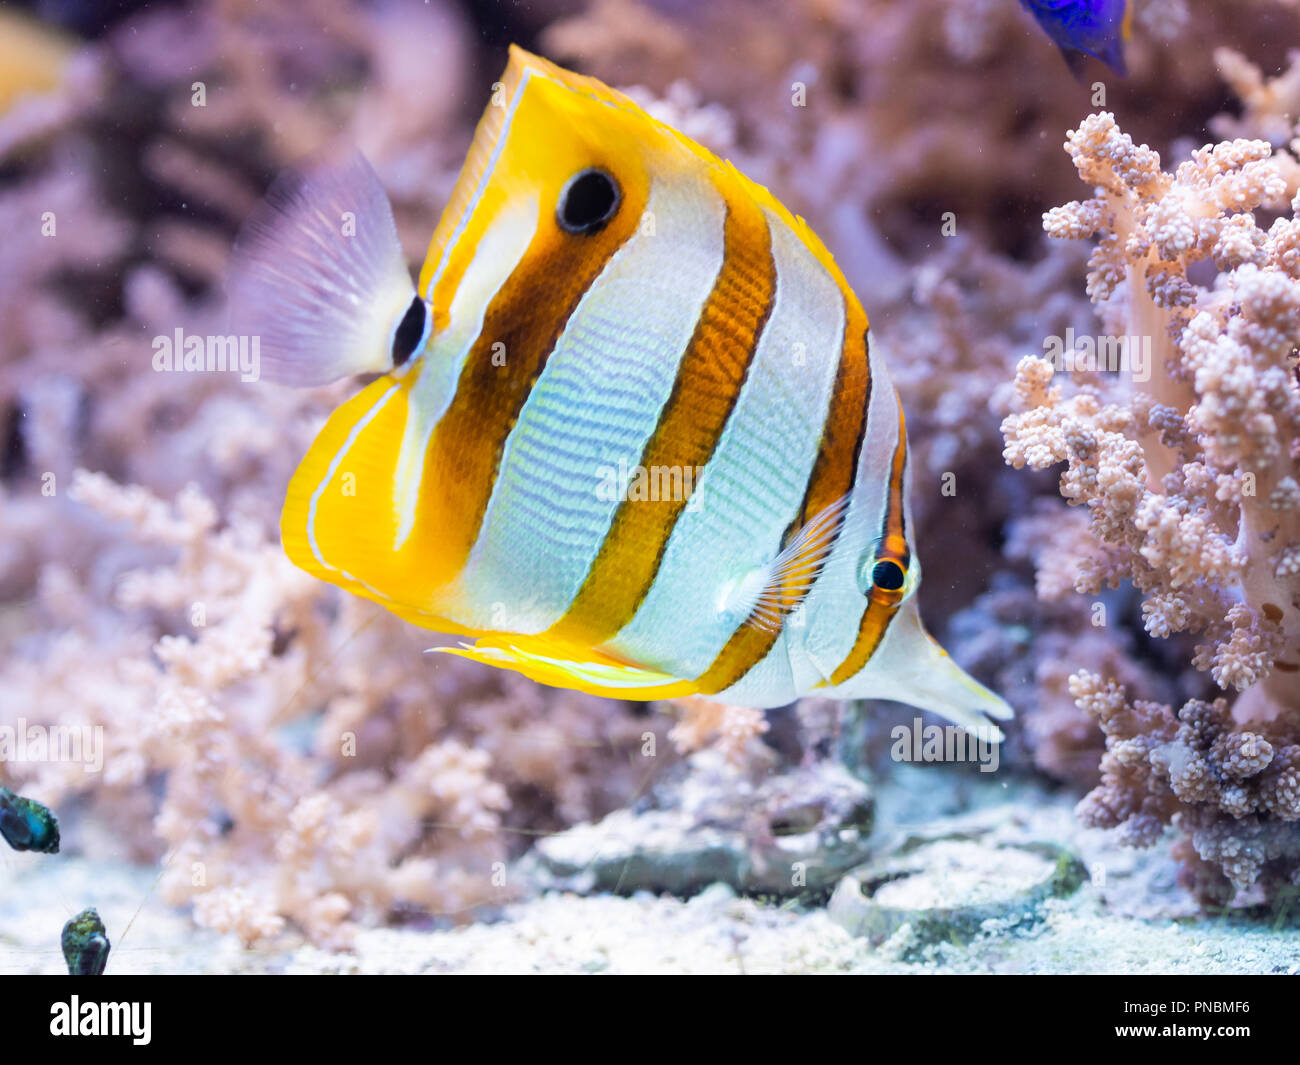 Fish Chelmon rostratus - Banded Longsnout Butterflyfish, saltwater - Stock Image